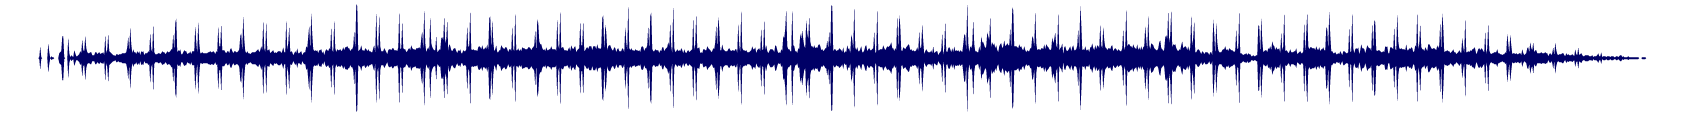 waveform of track #87736